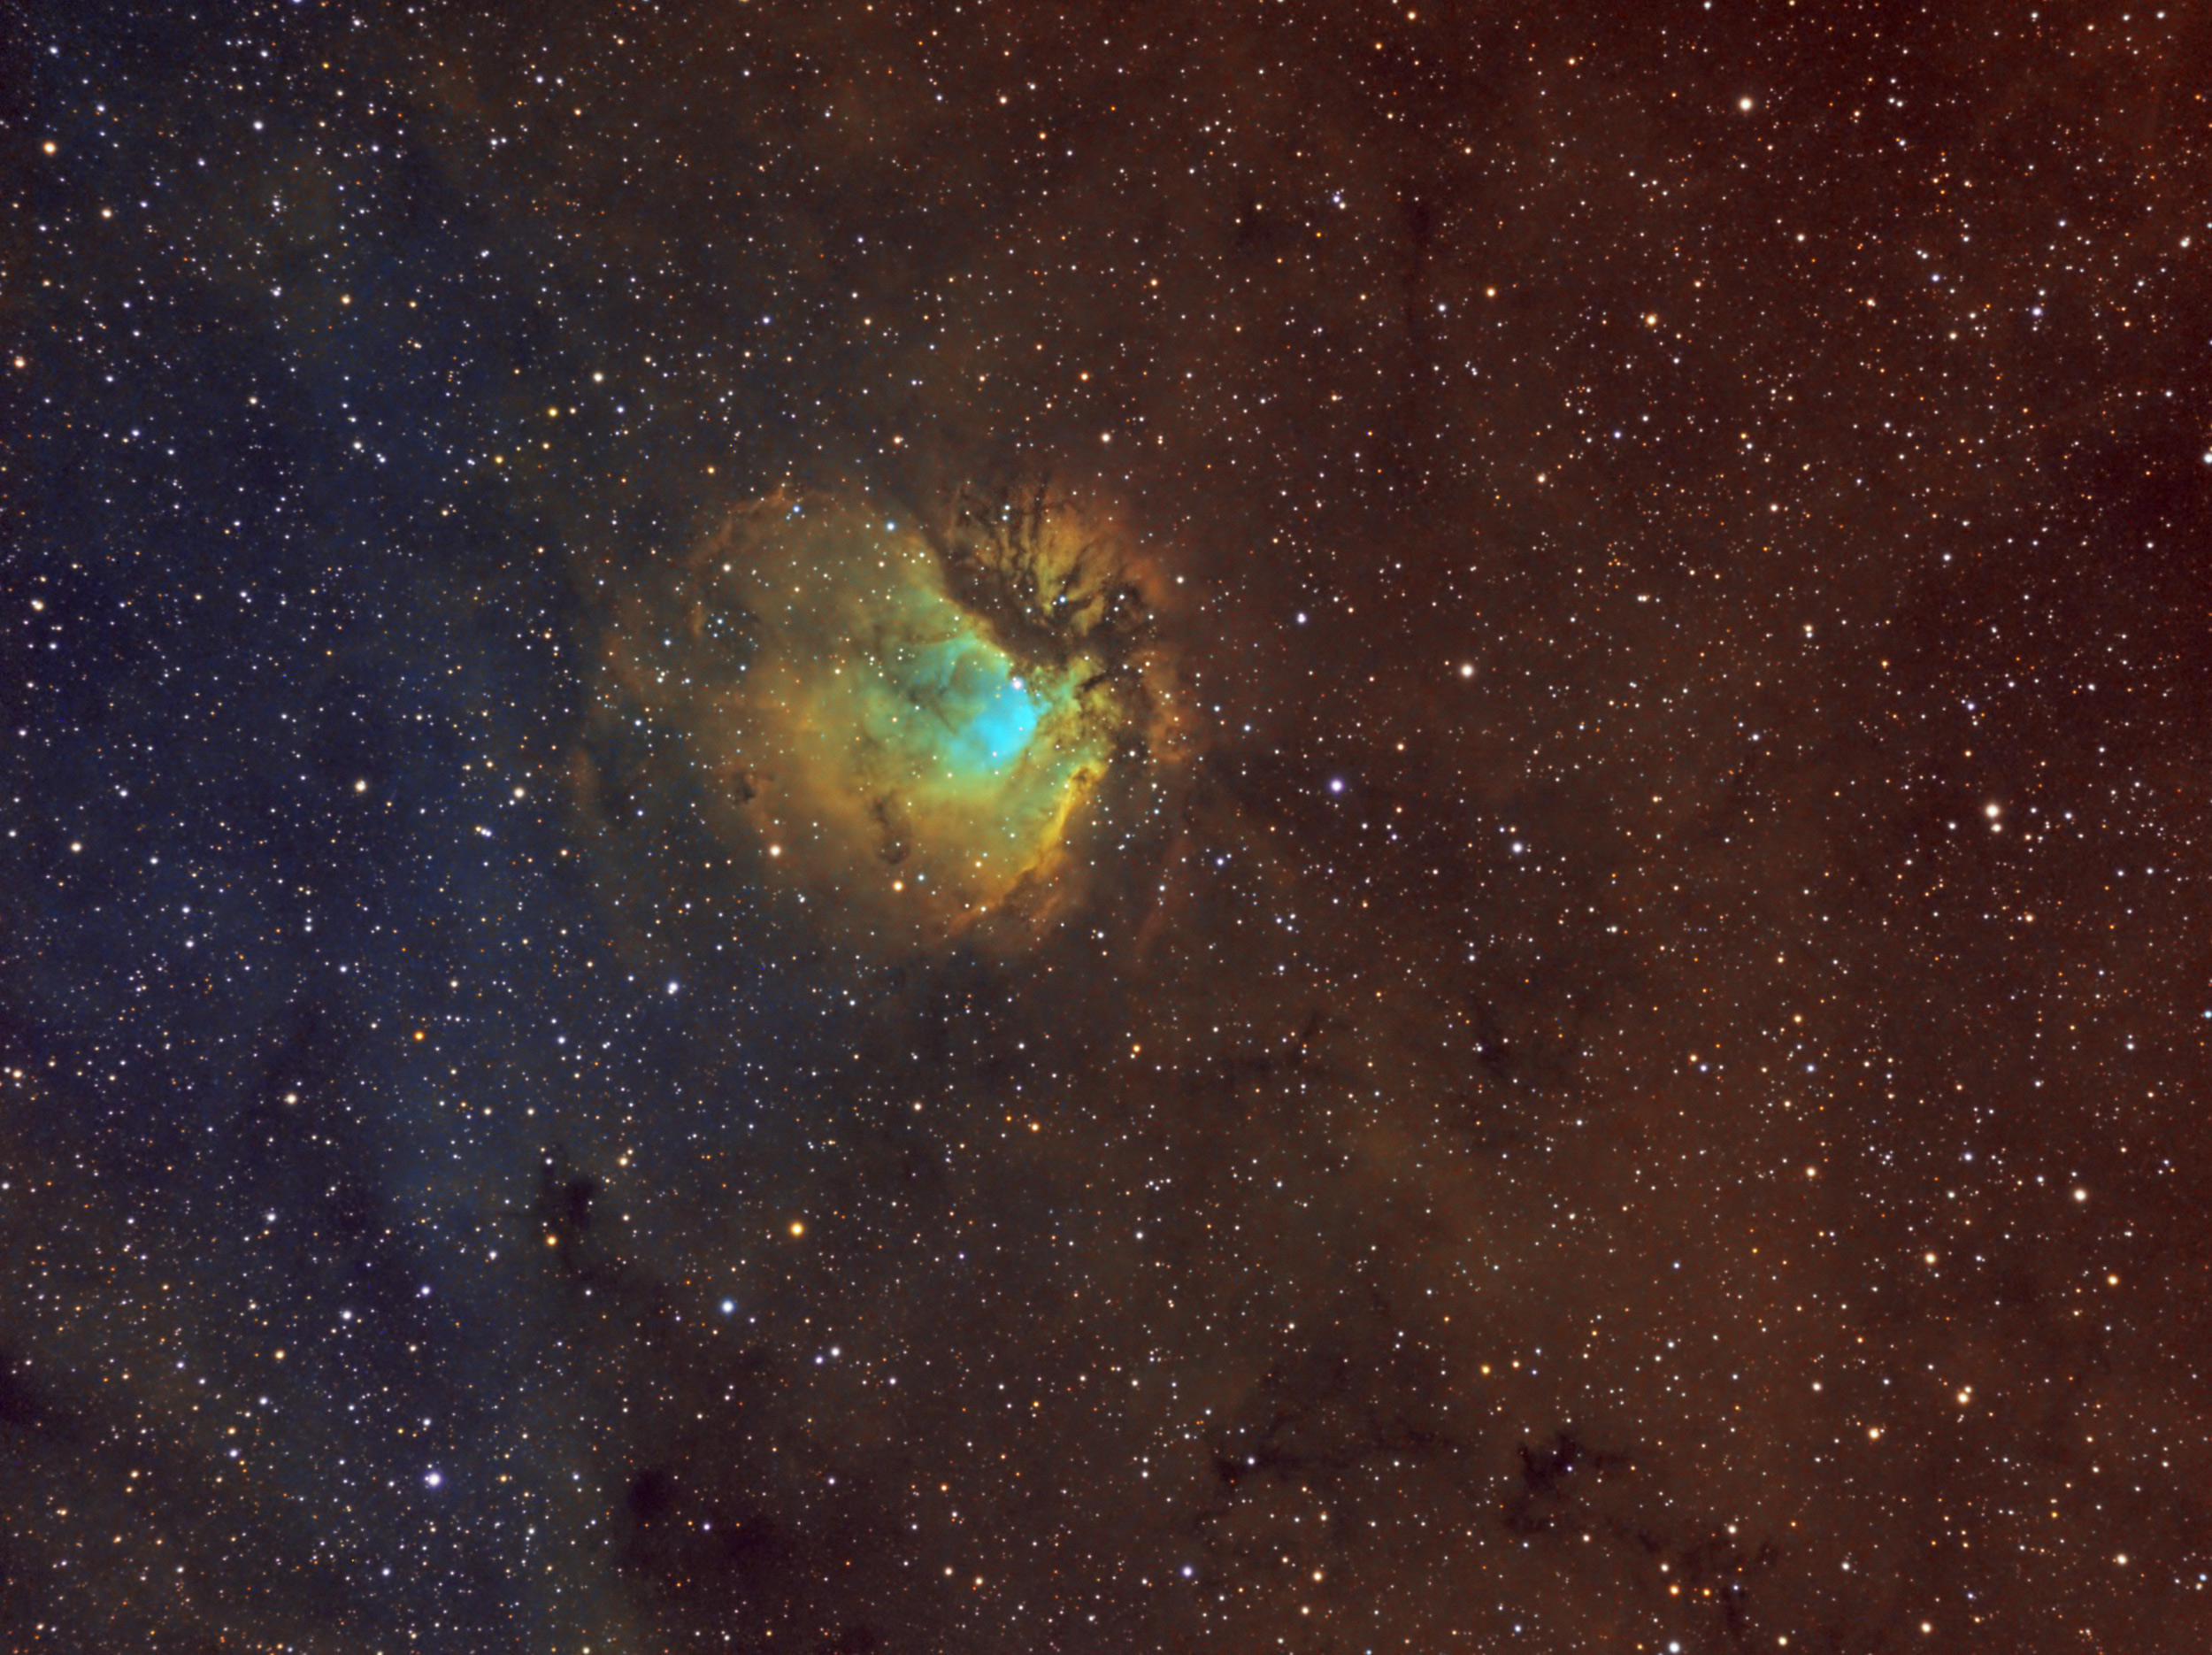 Stargazer Captures Striking Nebula View (Photo)